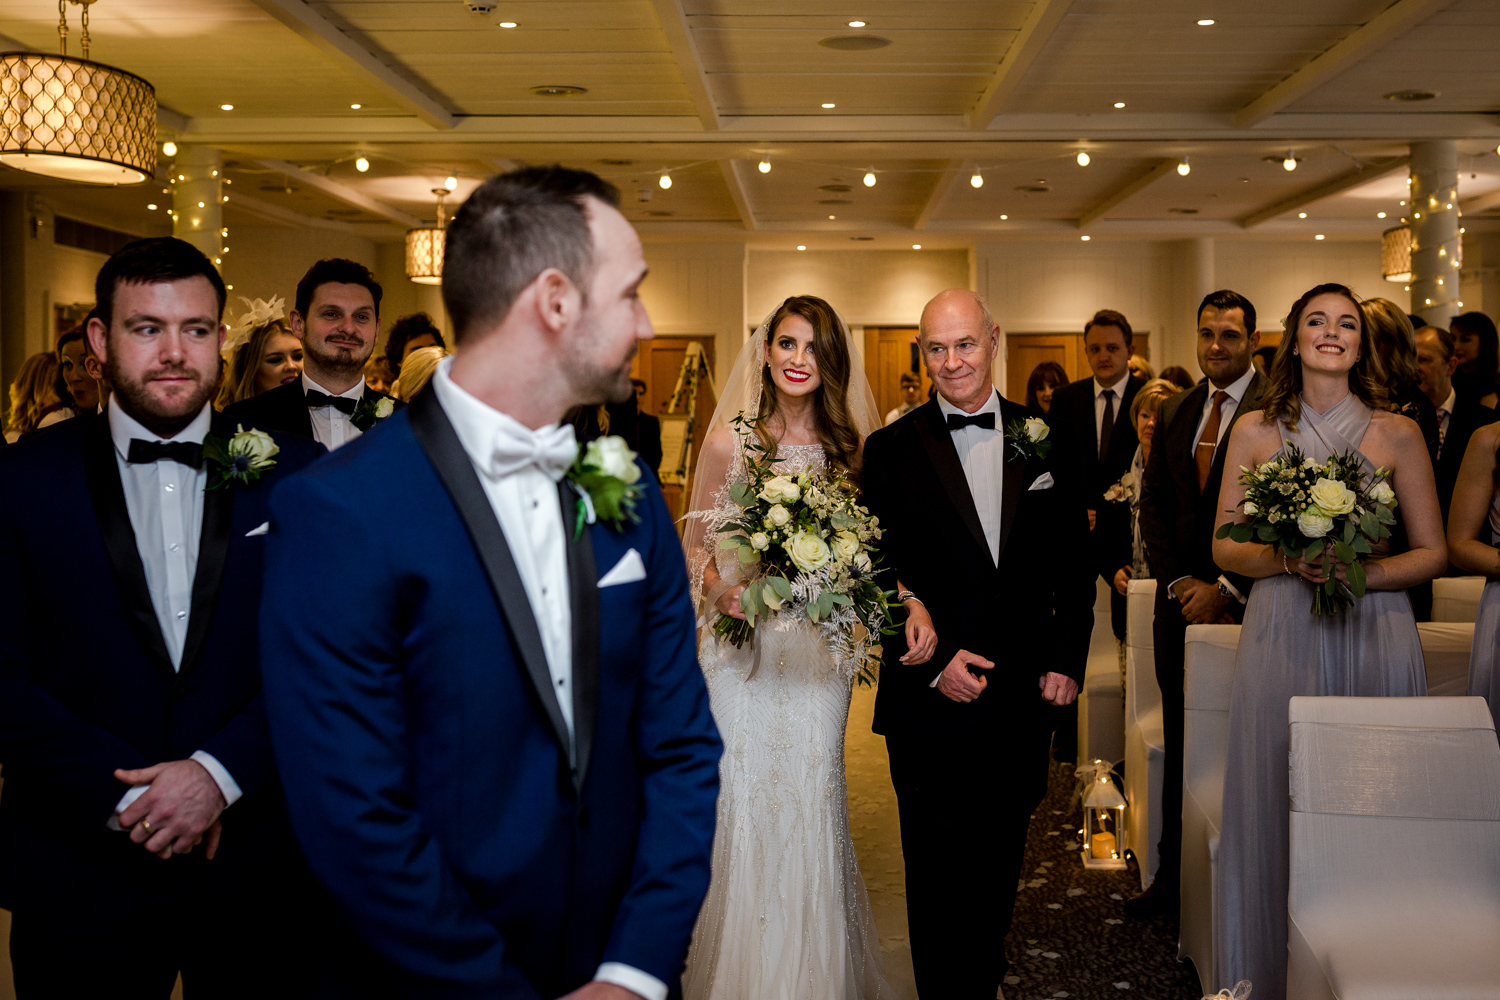 The bride and groom at Stanley House Hotel in Clitheroe